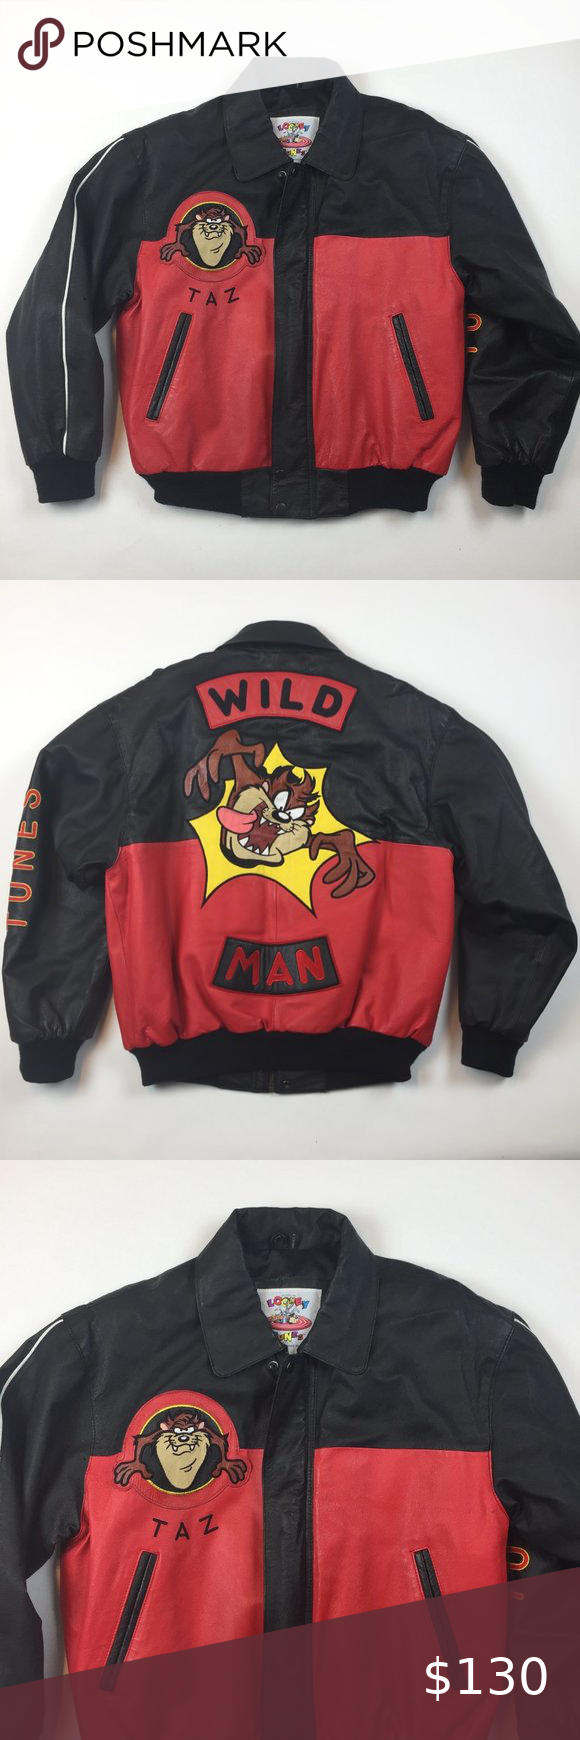 Vintage Looney Tunes Excelled Taz Leather Jacket M Warner Bro S 1996 Gently Used No Flaws Great Condition I Have Many In 2020 Leather Jacket Jackets Clothes Design [ 1740 x 580 Pixel ]